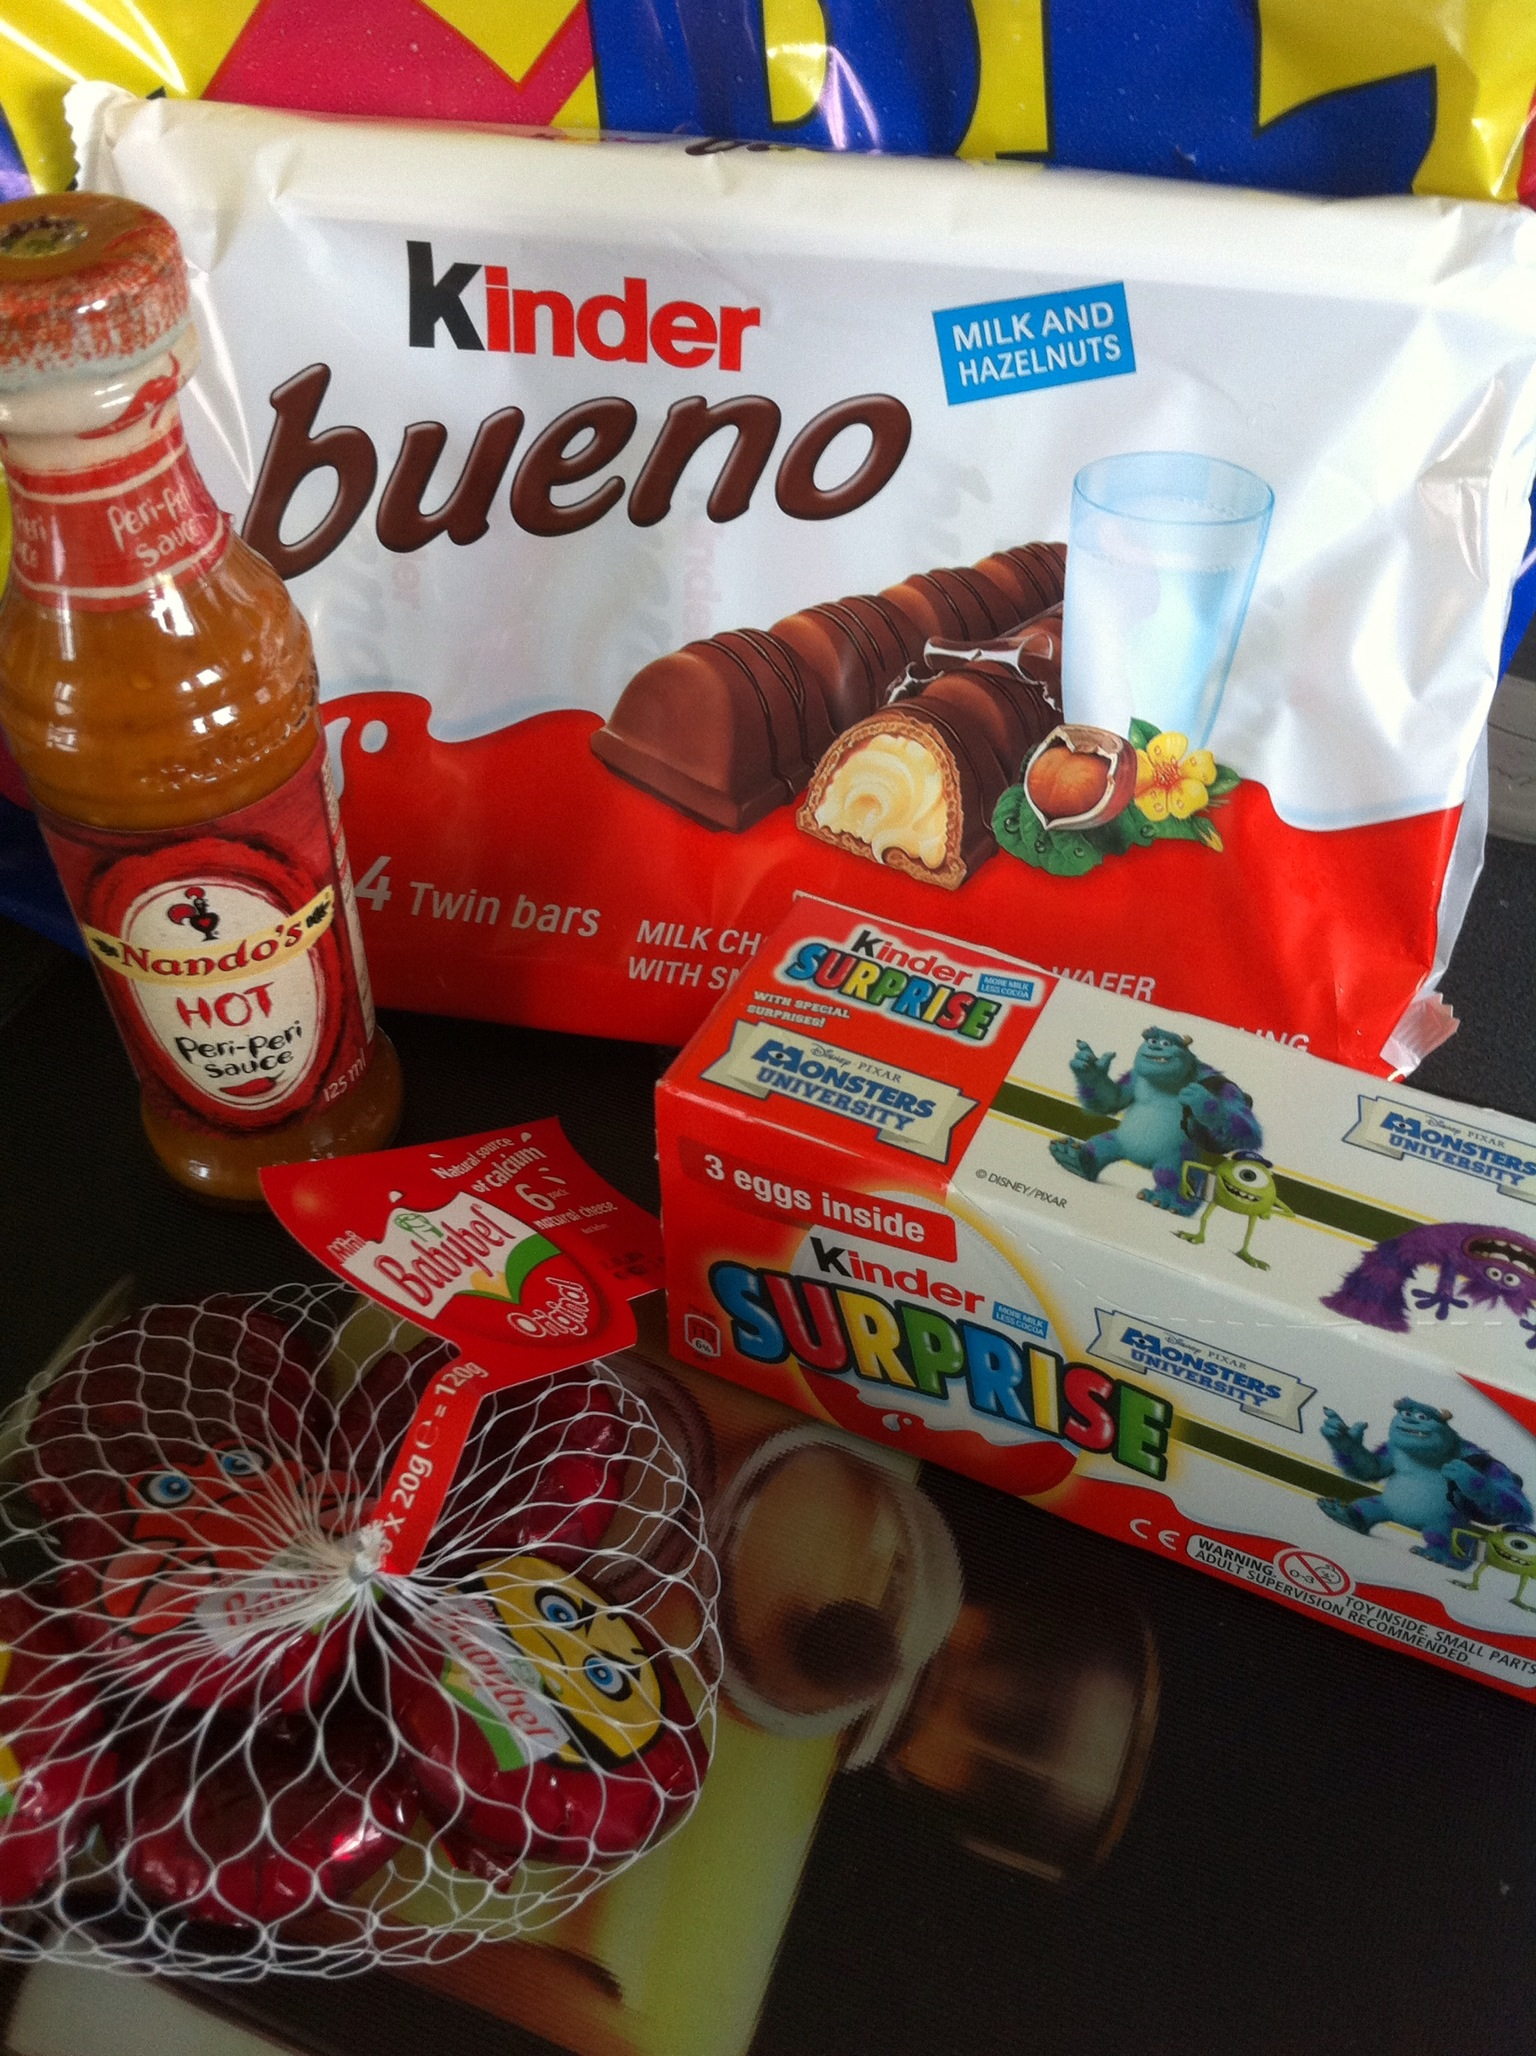 Kinder bars £1.68. Kinder eggs £1.71. Babybel cheese £1.74